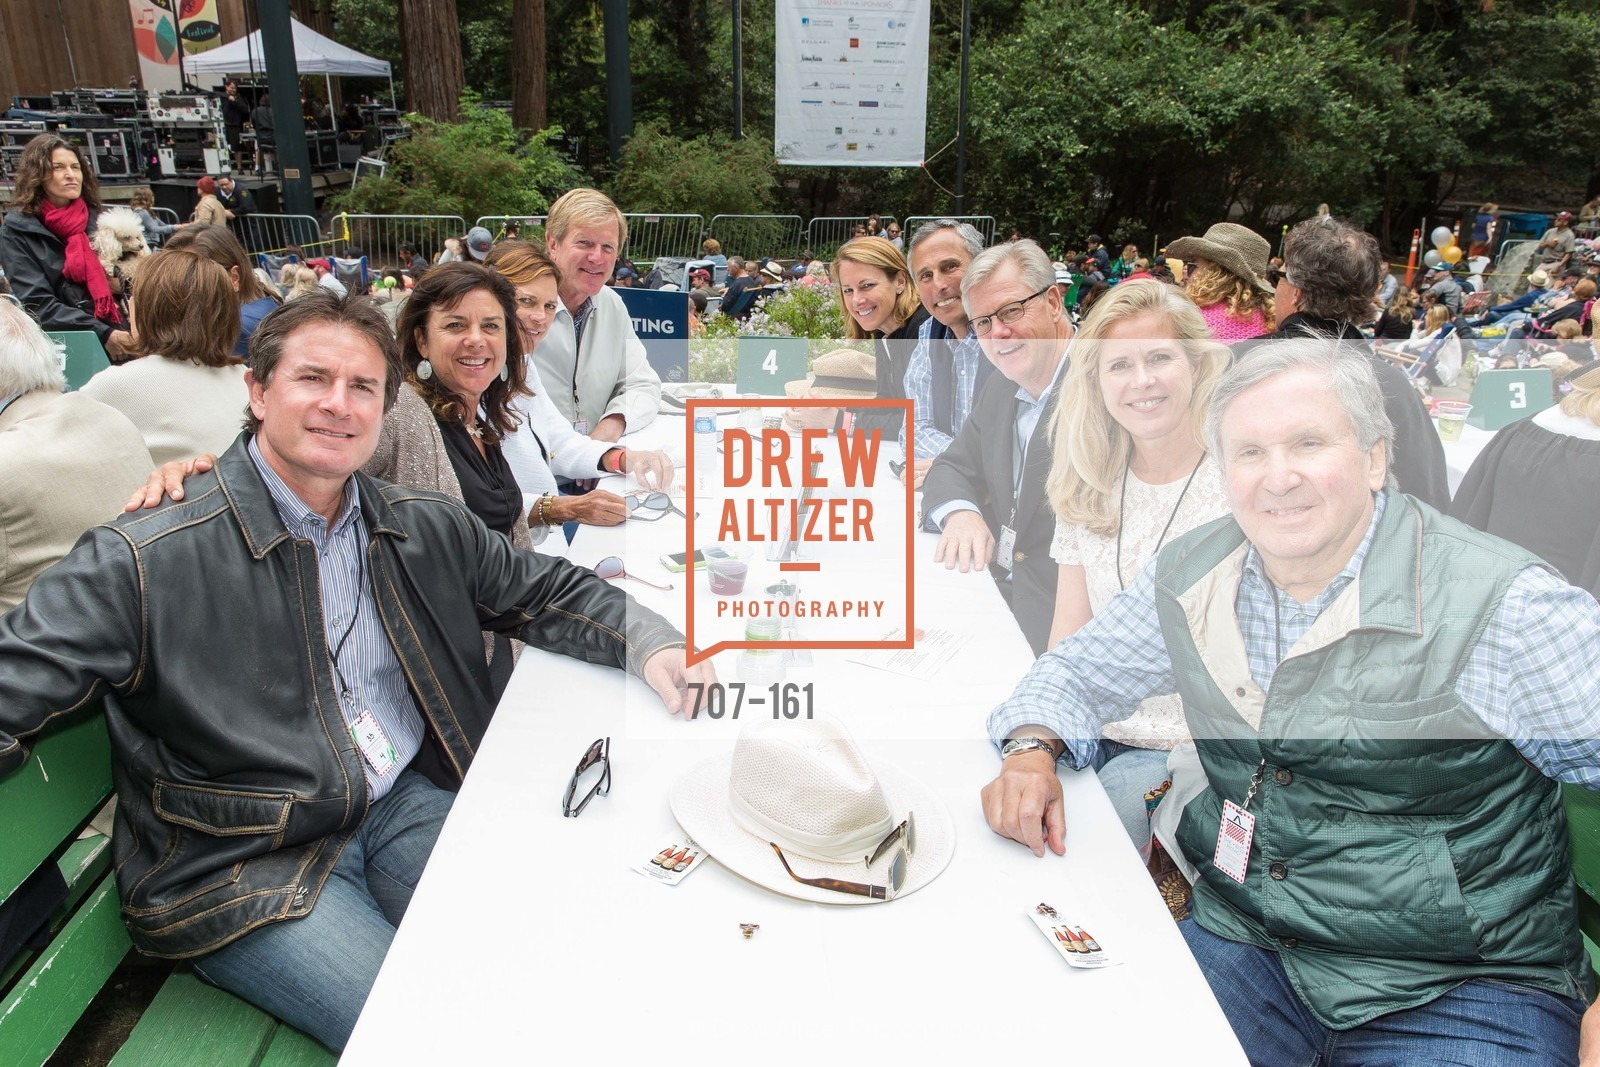 Larry Solomon, Connie Ring, Lisa Troedson, Jack Troedson, Bill Ring, Shawn Byers, Brook Byers, THE BIG PICNIC Kicking off  2015 Stern Grove Season, Stern Grove. 2750 19th Avenue, June 14th, 2015,Drew Altizer, Drew Altizer Photography, full-service agency, private events, San Francisco photographer, photographer california